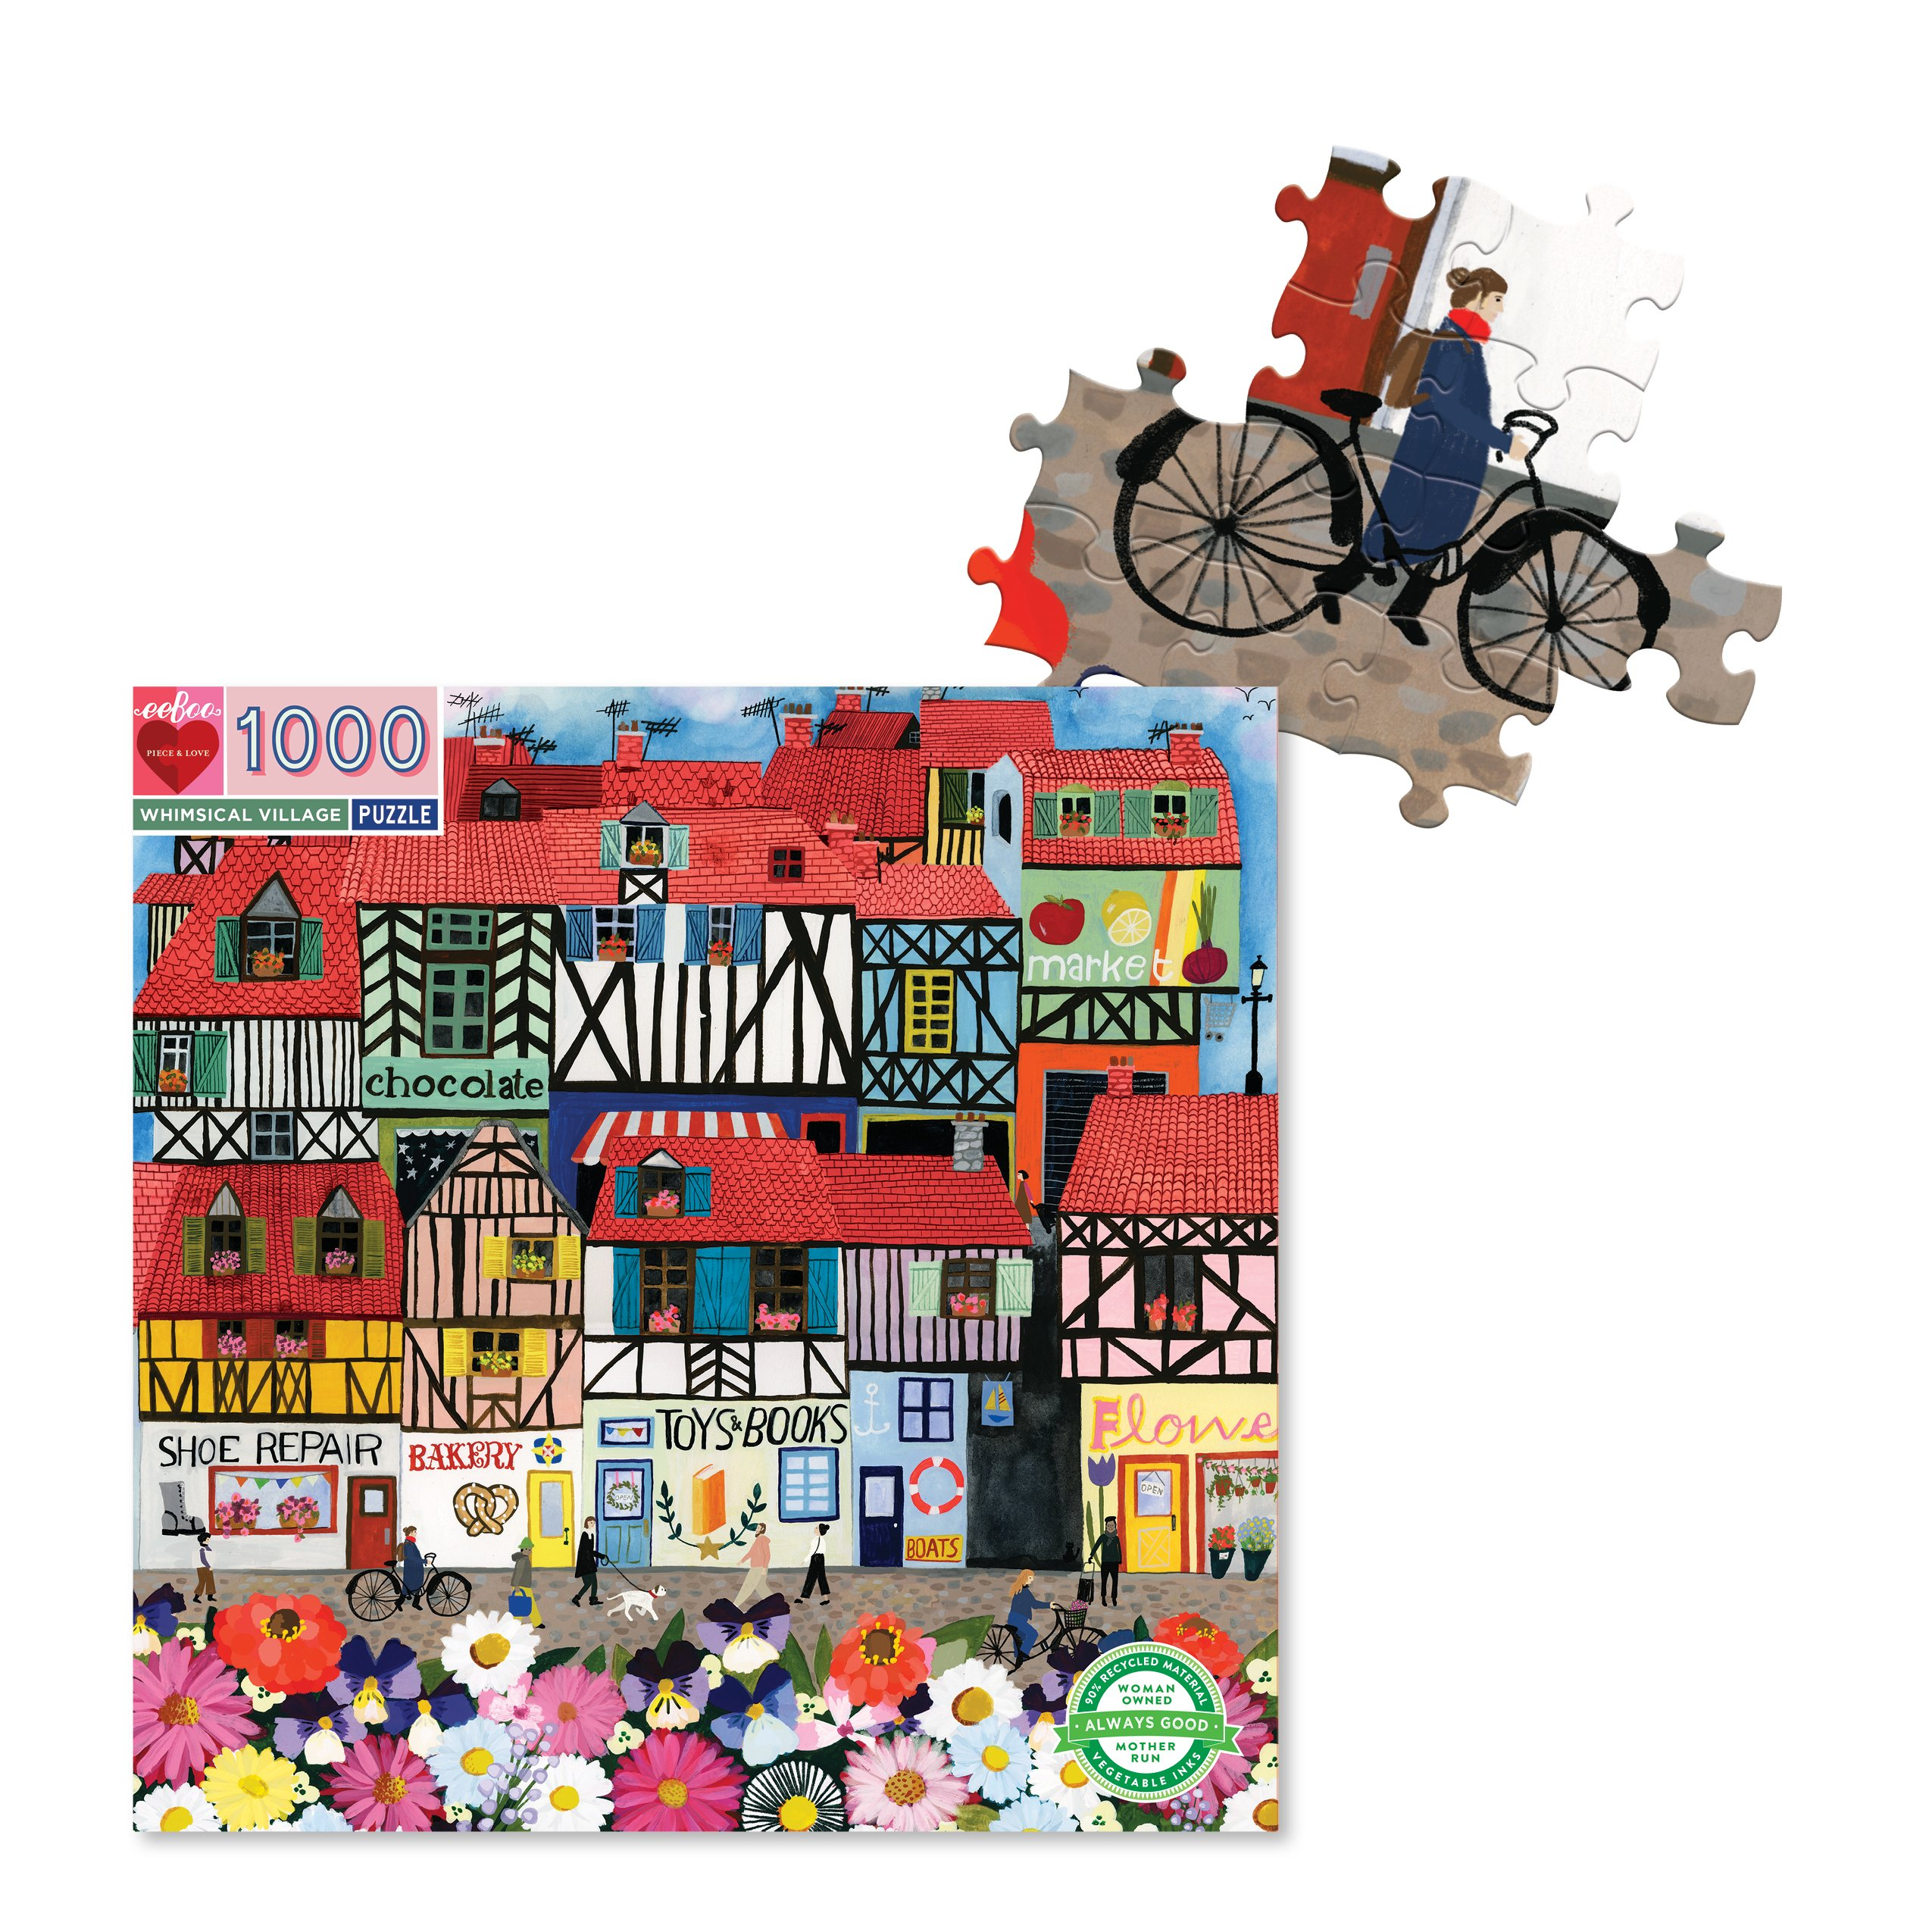 Whimsical Village 1000 Piece Jigsaw Puzzle by eeBoo